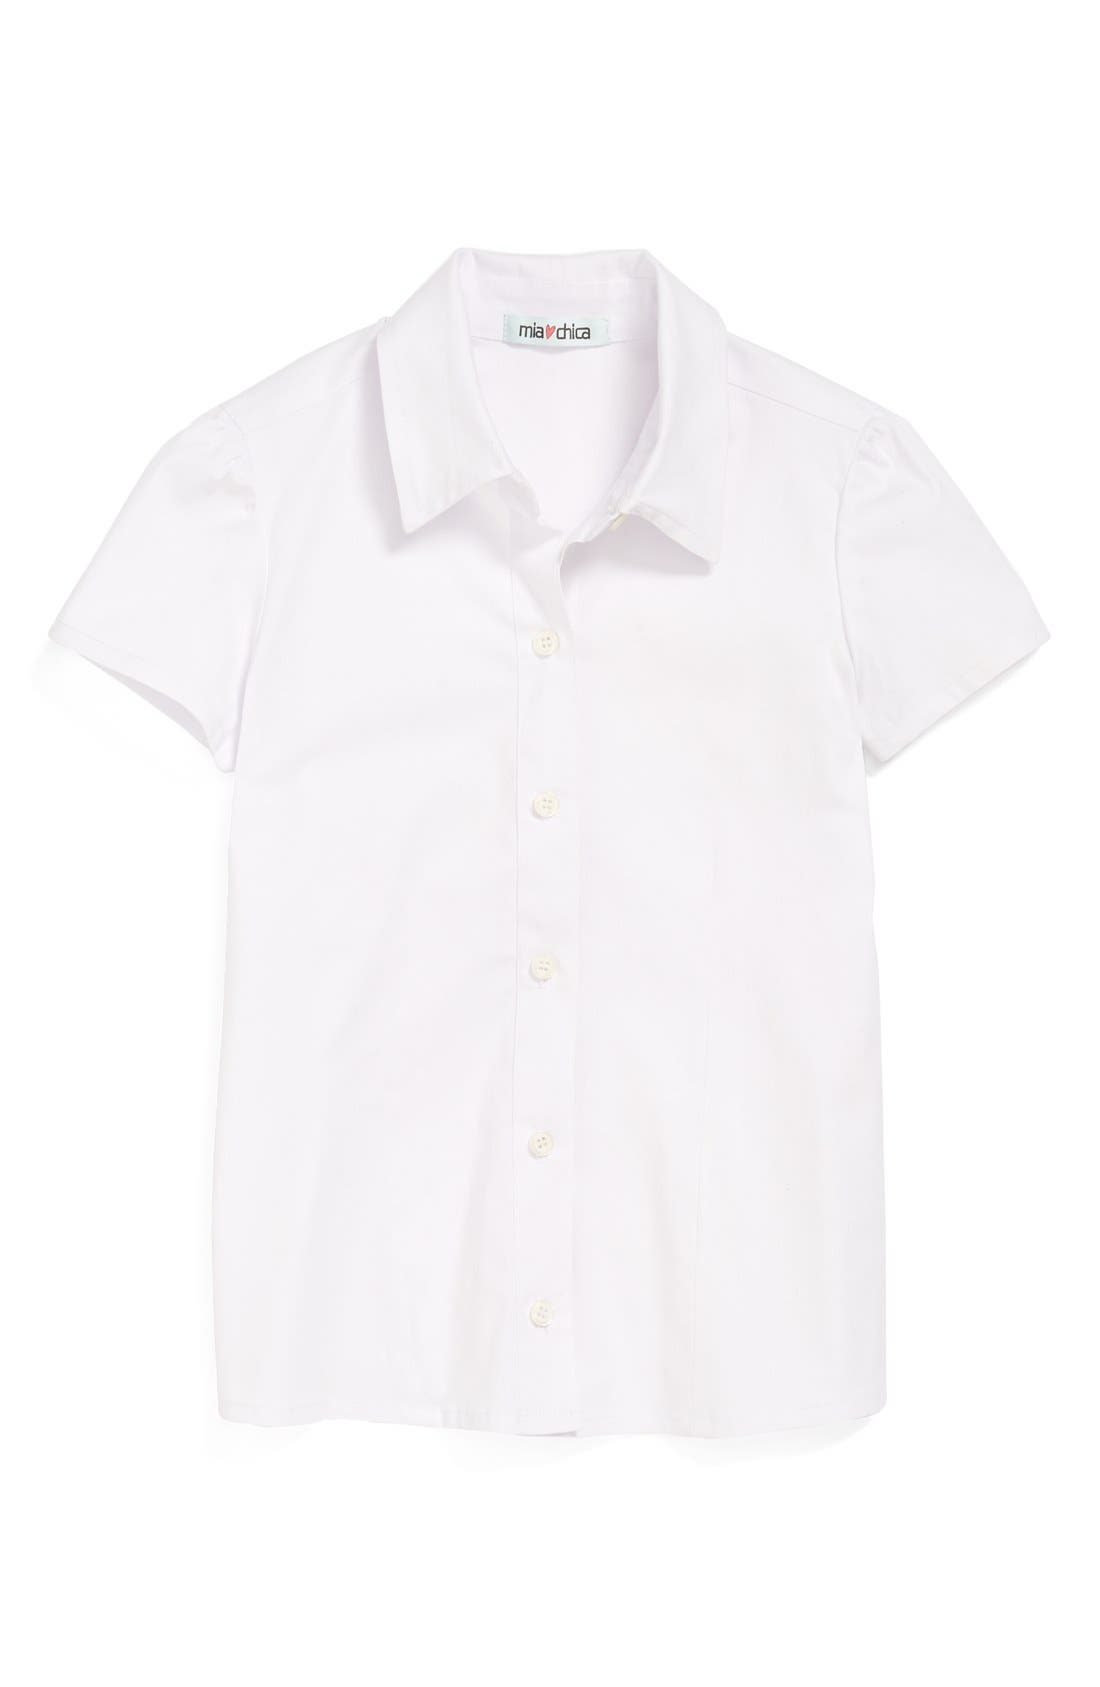 Main Image - Mia Chica Short Sleeve Stretch Cotton Blouse (Big Girls) (Online Only)